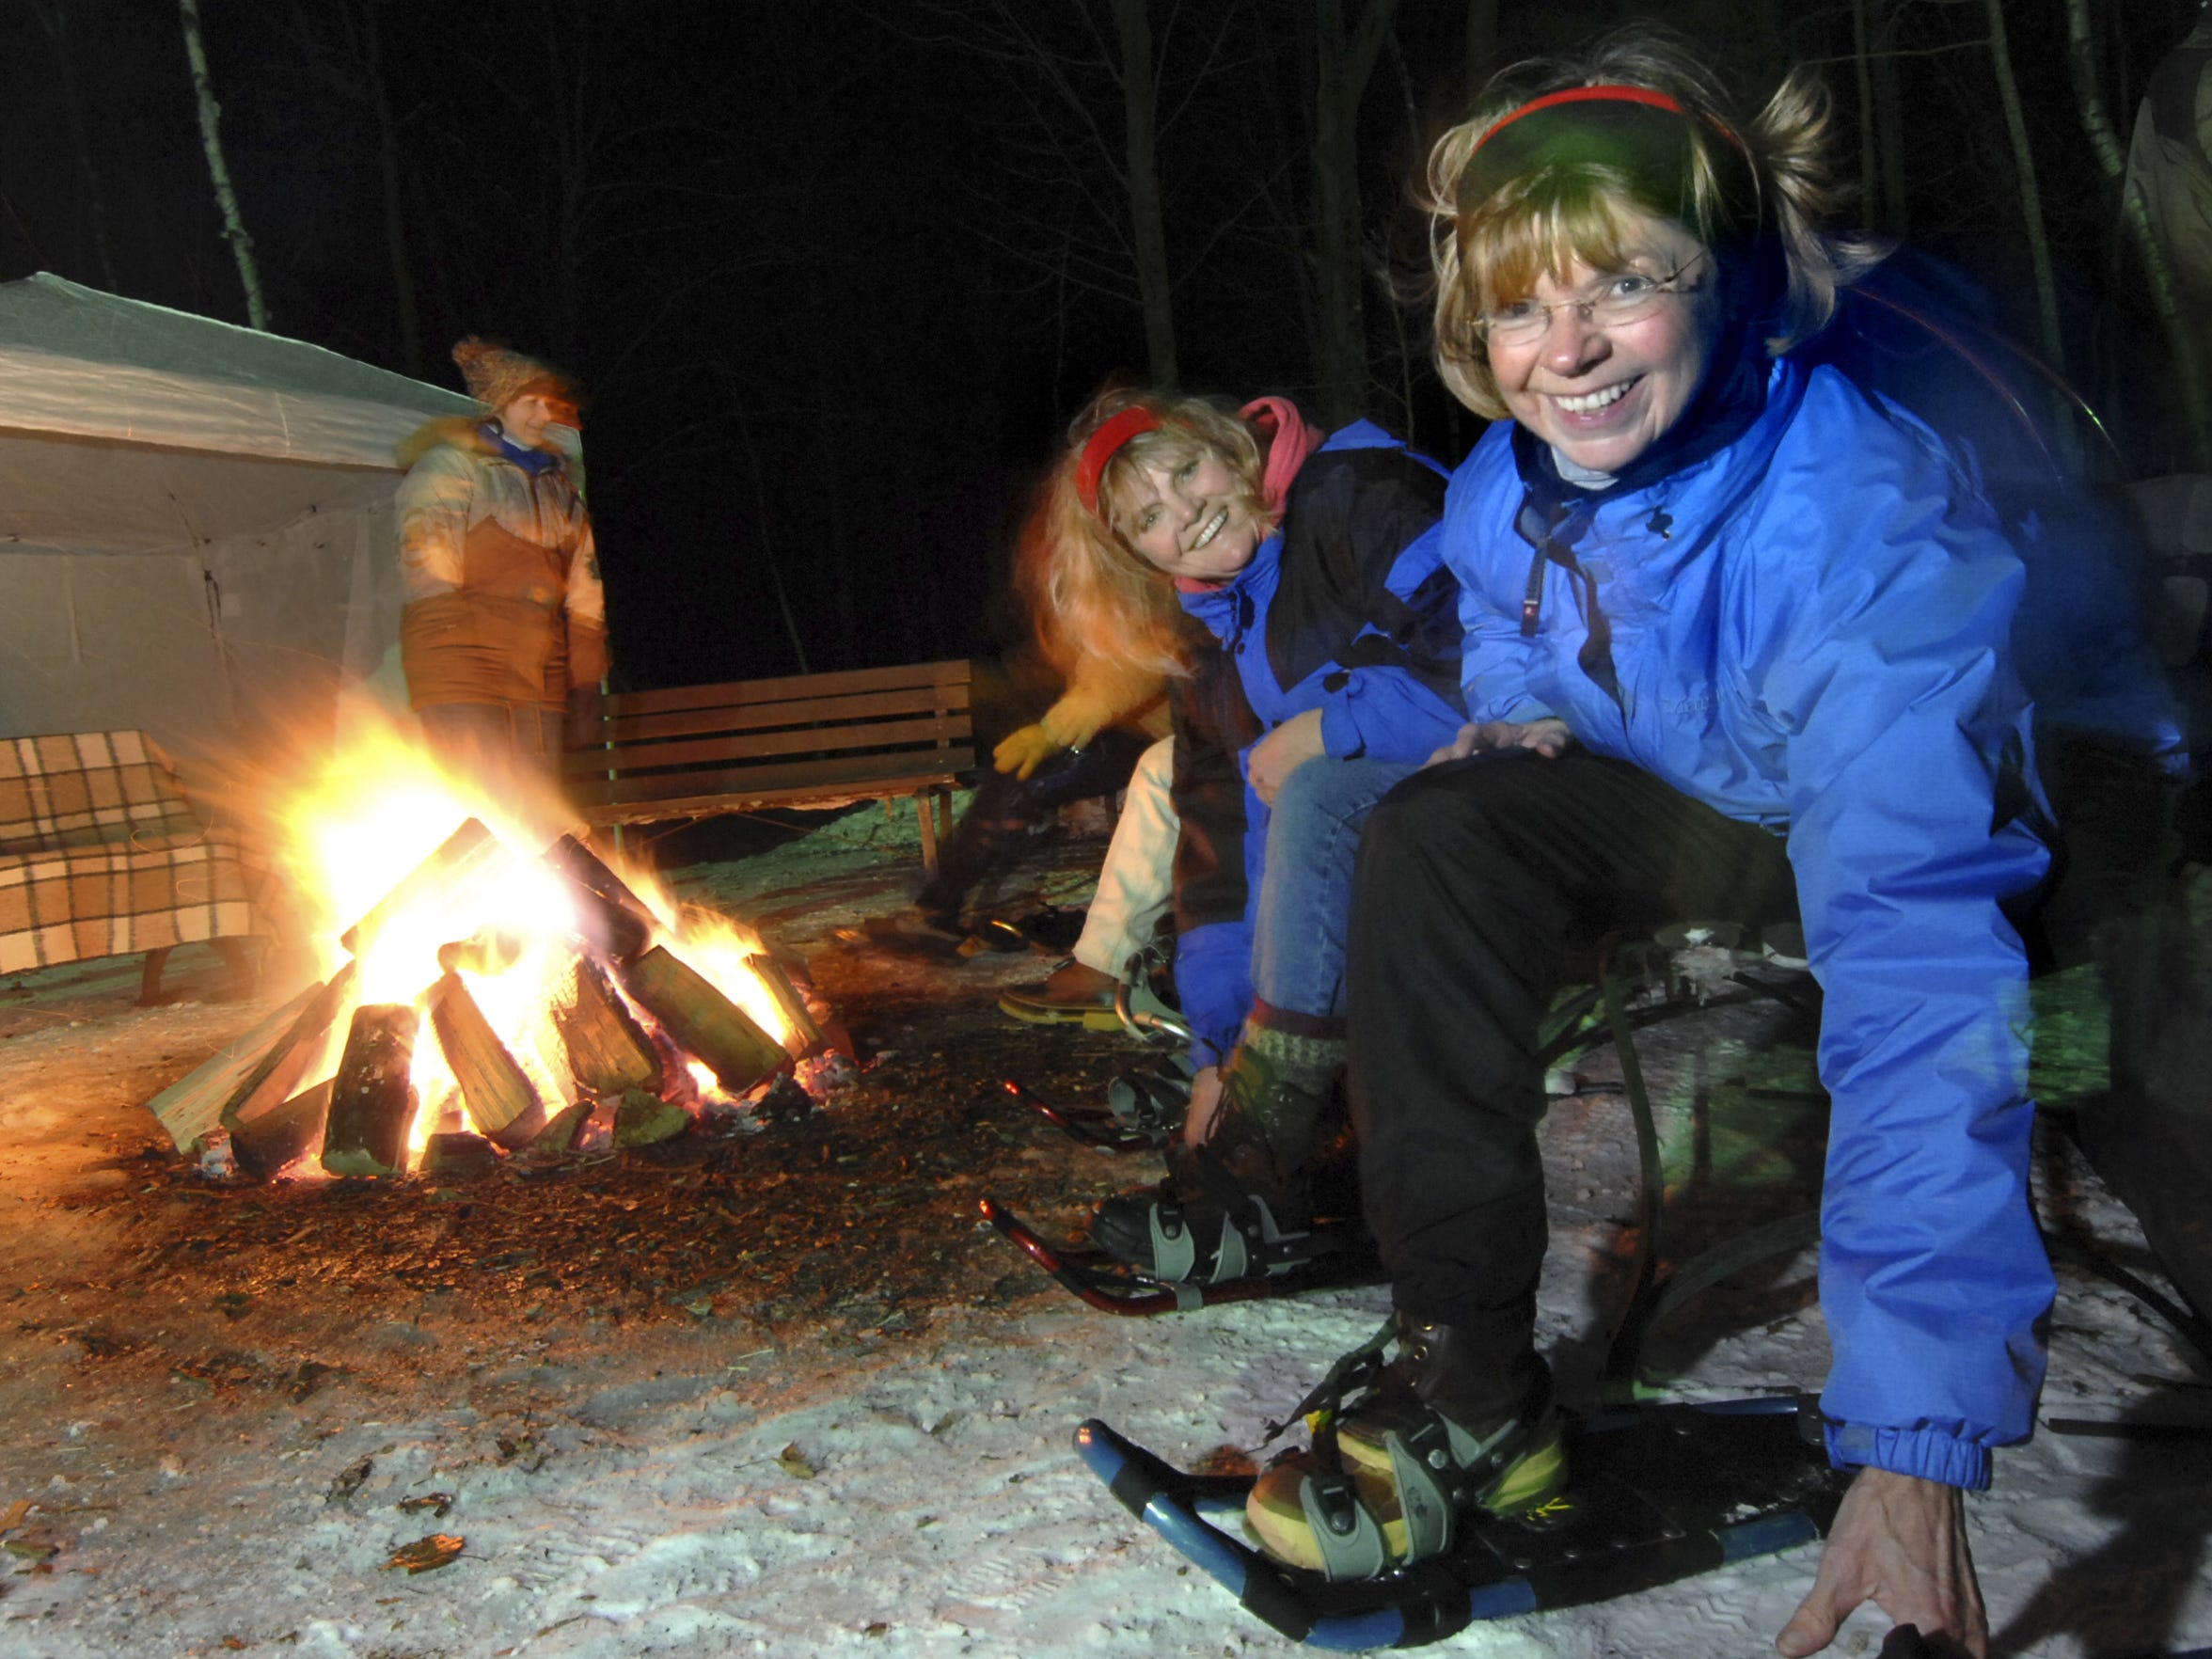 In this 2007 file photo,Linda Moscherosch, right, and Kathy Baumann of Wausau get ready to take a candlelight snowshoe hike in the evening through the trails on Rib Mountain.